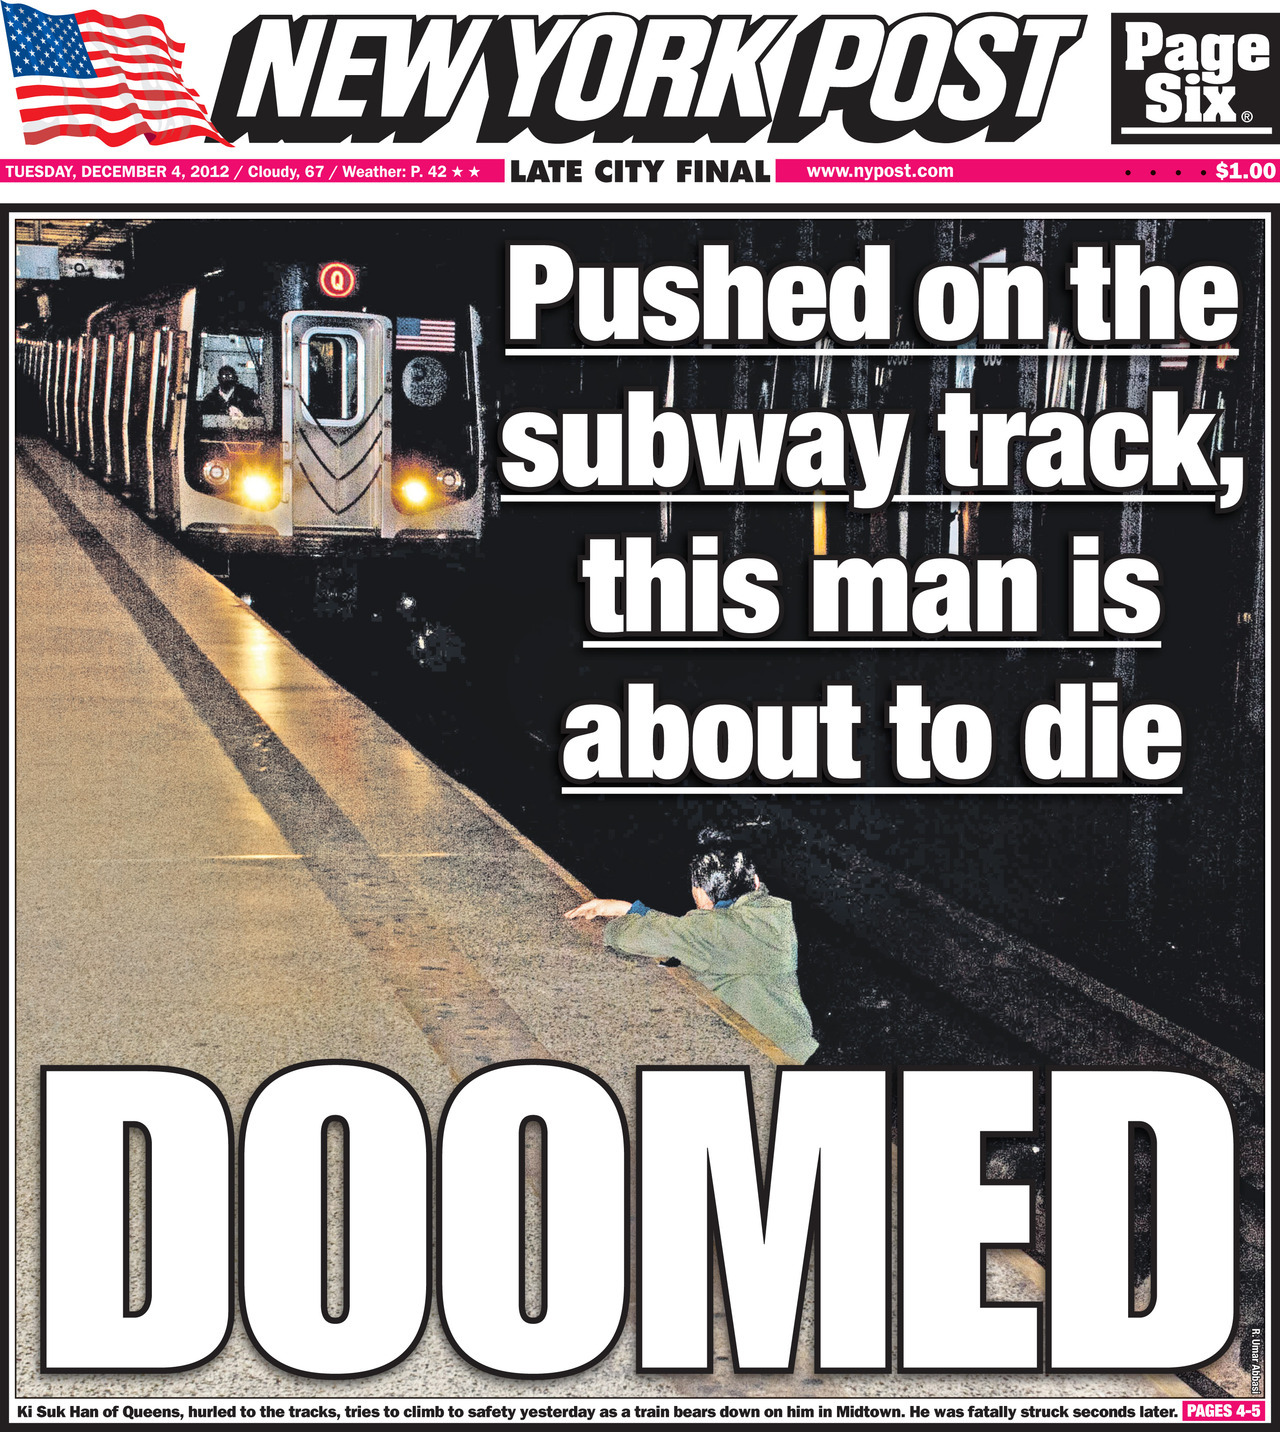 nypost:  Tragedy on the NYC Subway. DOOMED -Pushed on the subway track, this man is about to die. RIP. New York Post cover for Tuesday, December 4, 2012  If I'm ever in a train track and someone takes a picture of me instead of trying to help me… I promise I will haunt your ass til the end of days. #FuckedUp